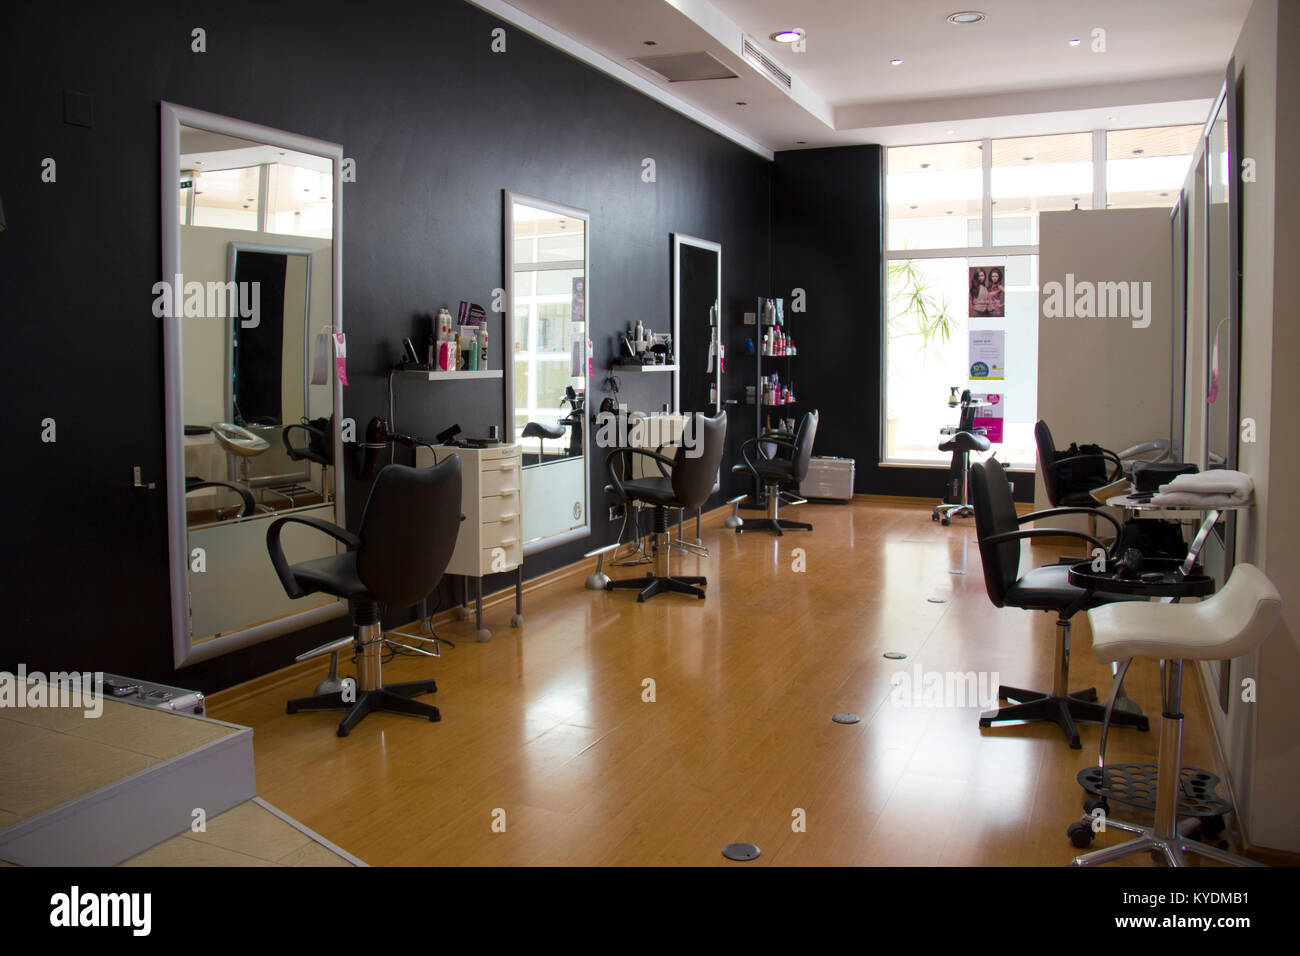 Salon Hair Salon Hair Dryers Stock Photos And Salon Hair Dryers Stock